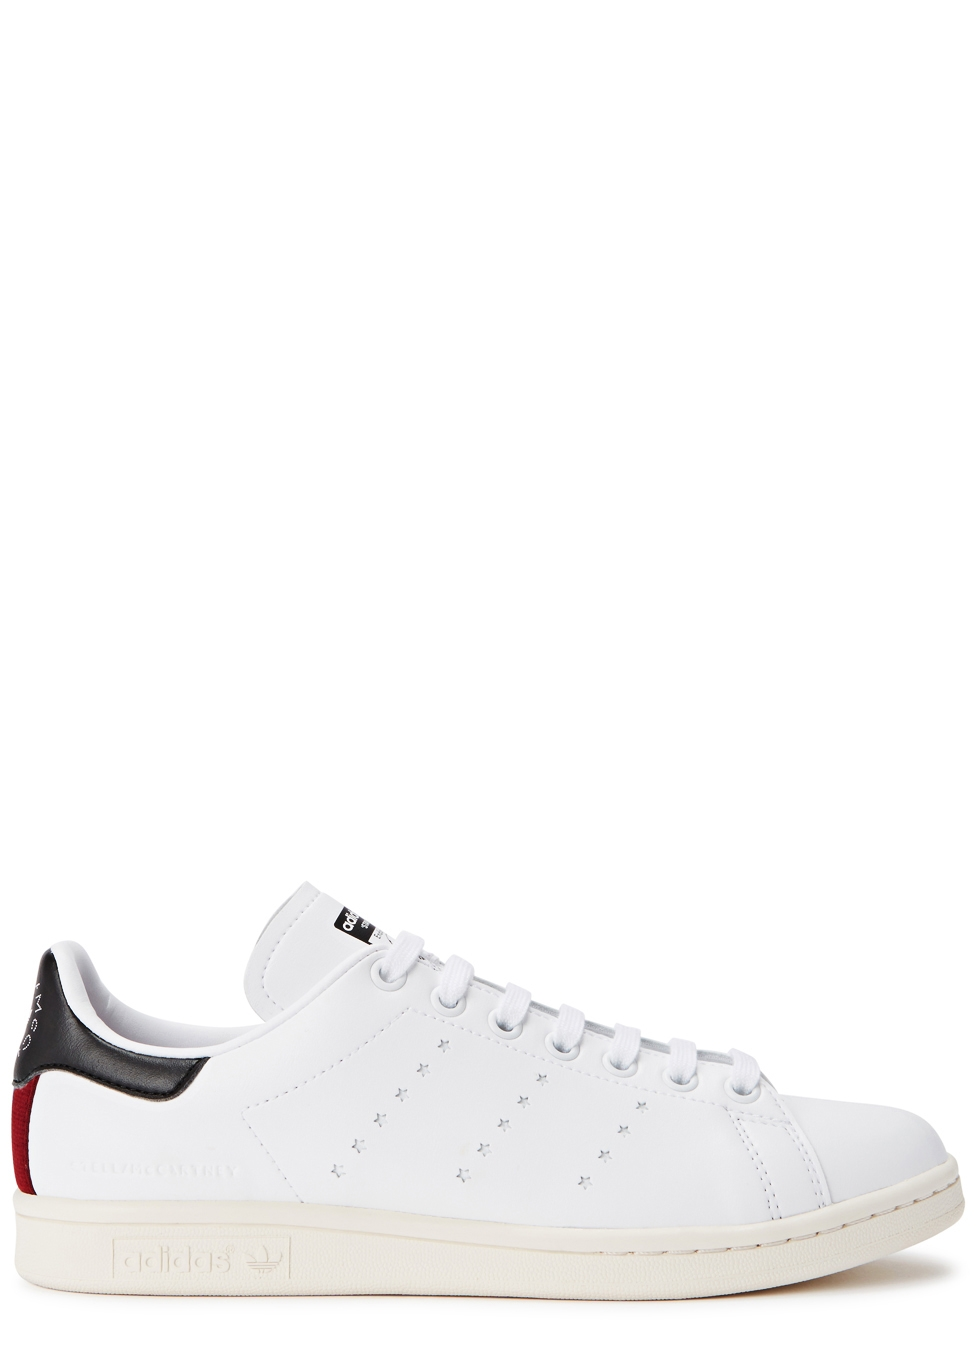 White Adidas Edition Vegan Stan Smith Sneakers in 9096 Wh/Blk